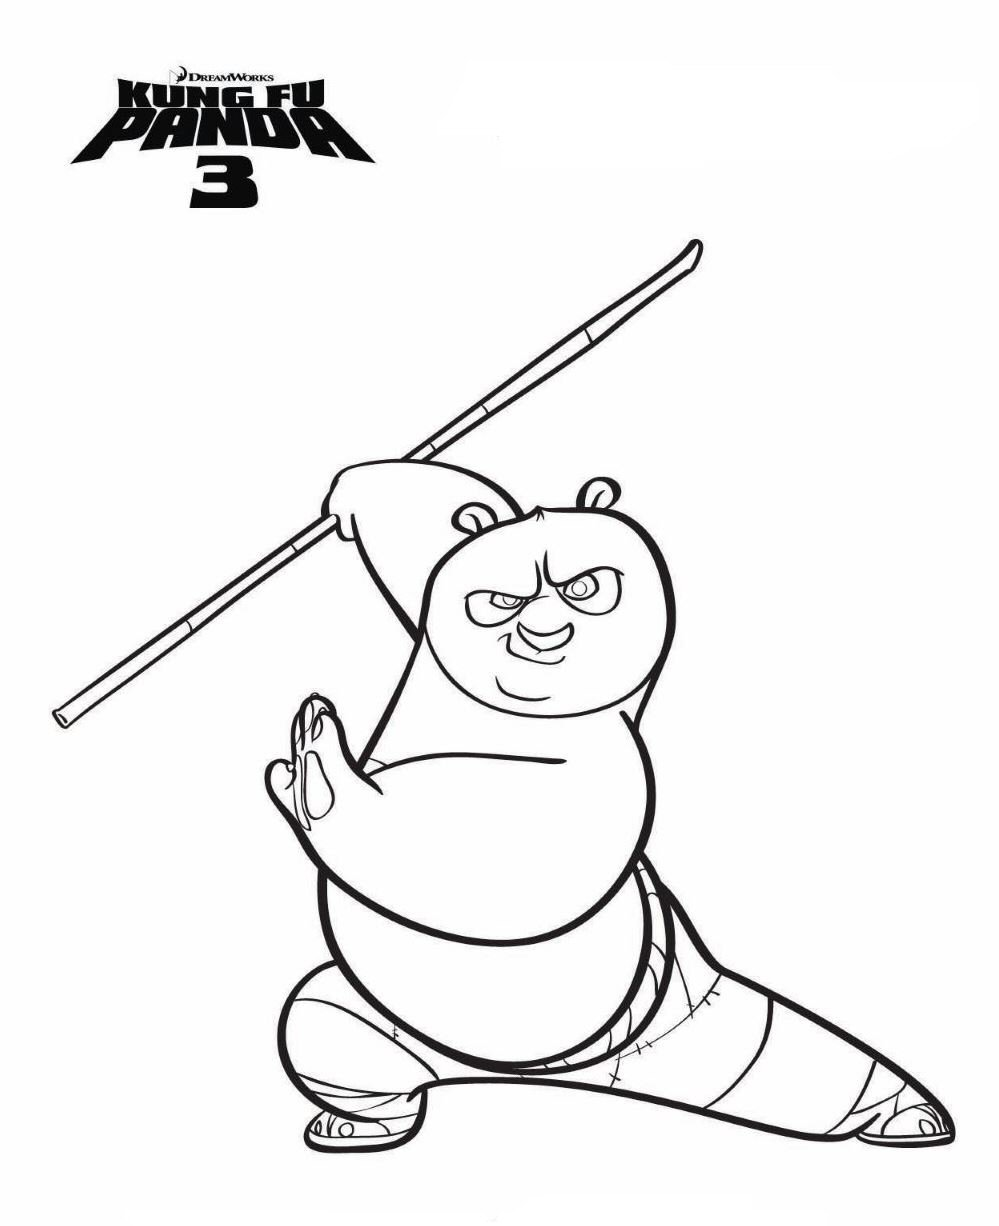 Kung fu panda 3 coloring pages printable only coloring pages for Kung fu panda printable coloring pages